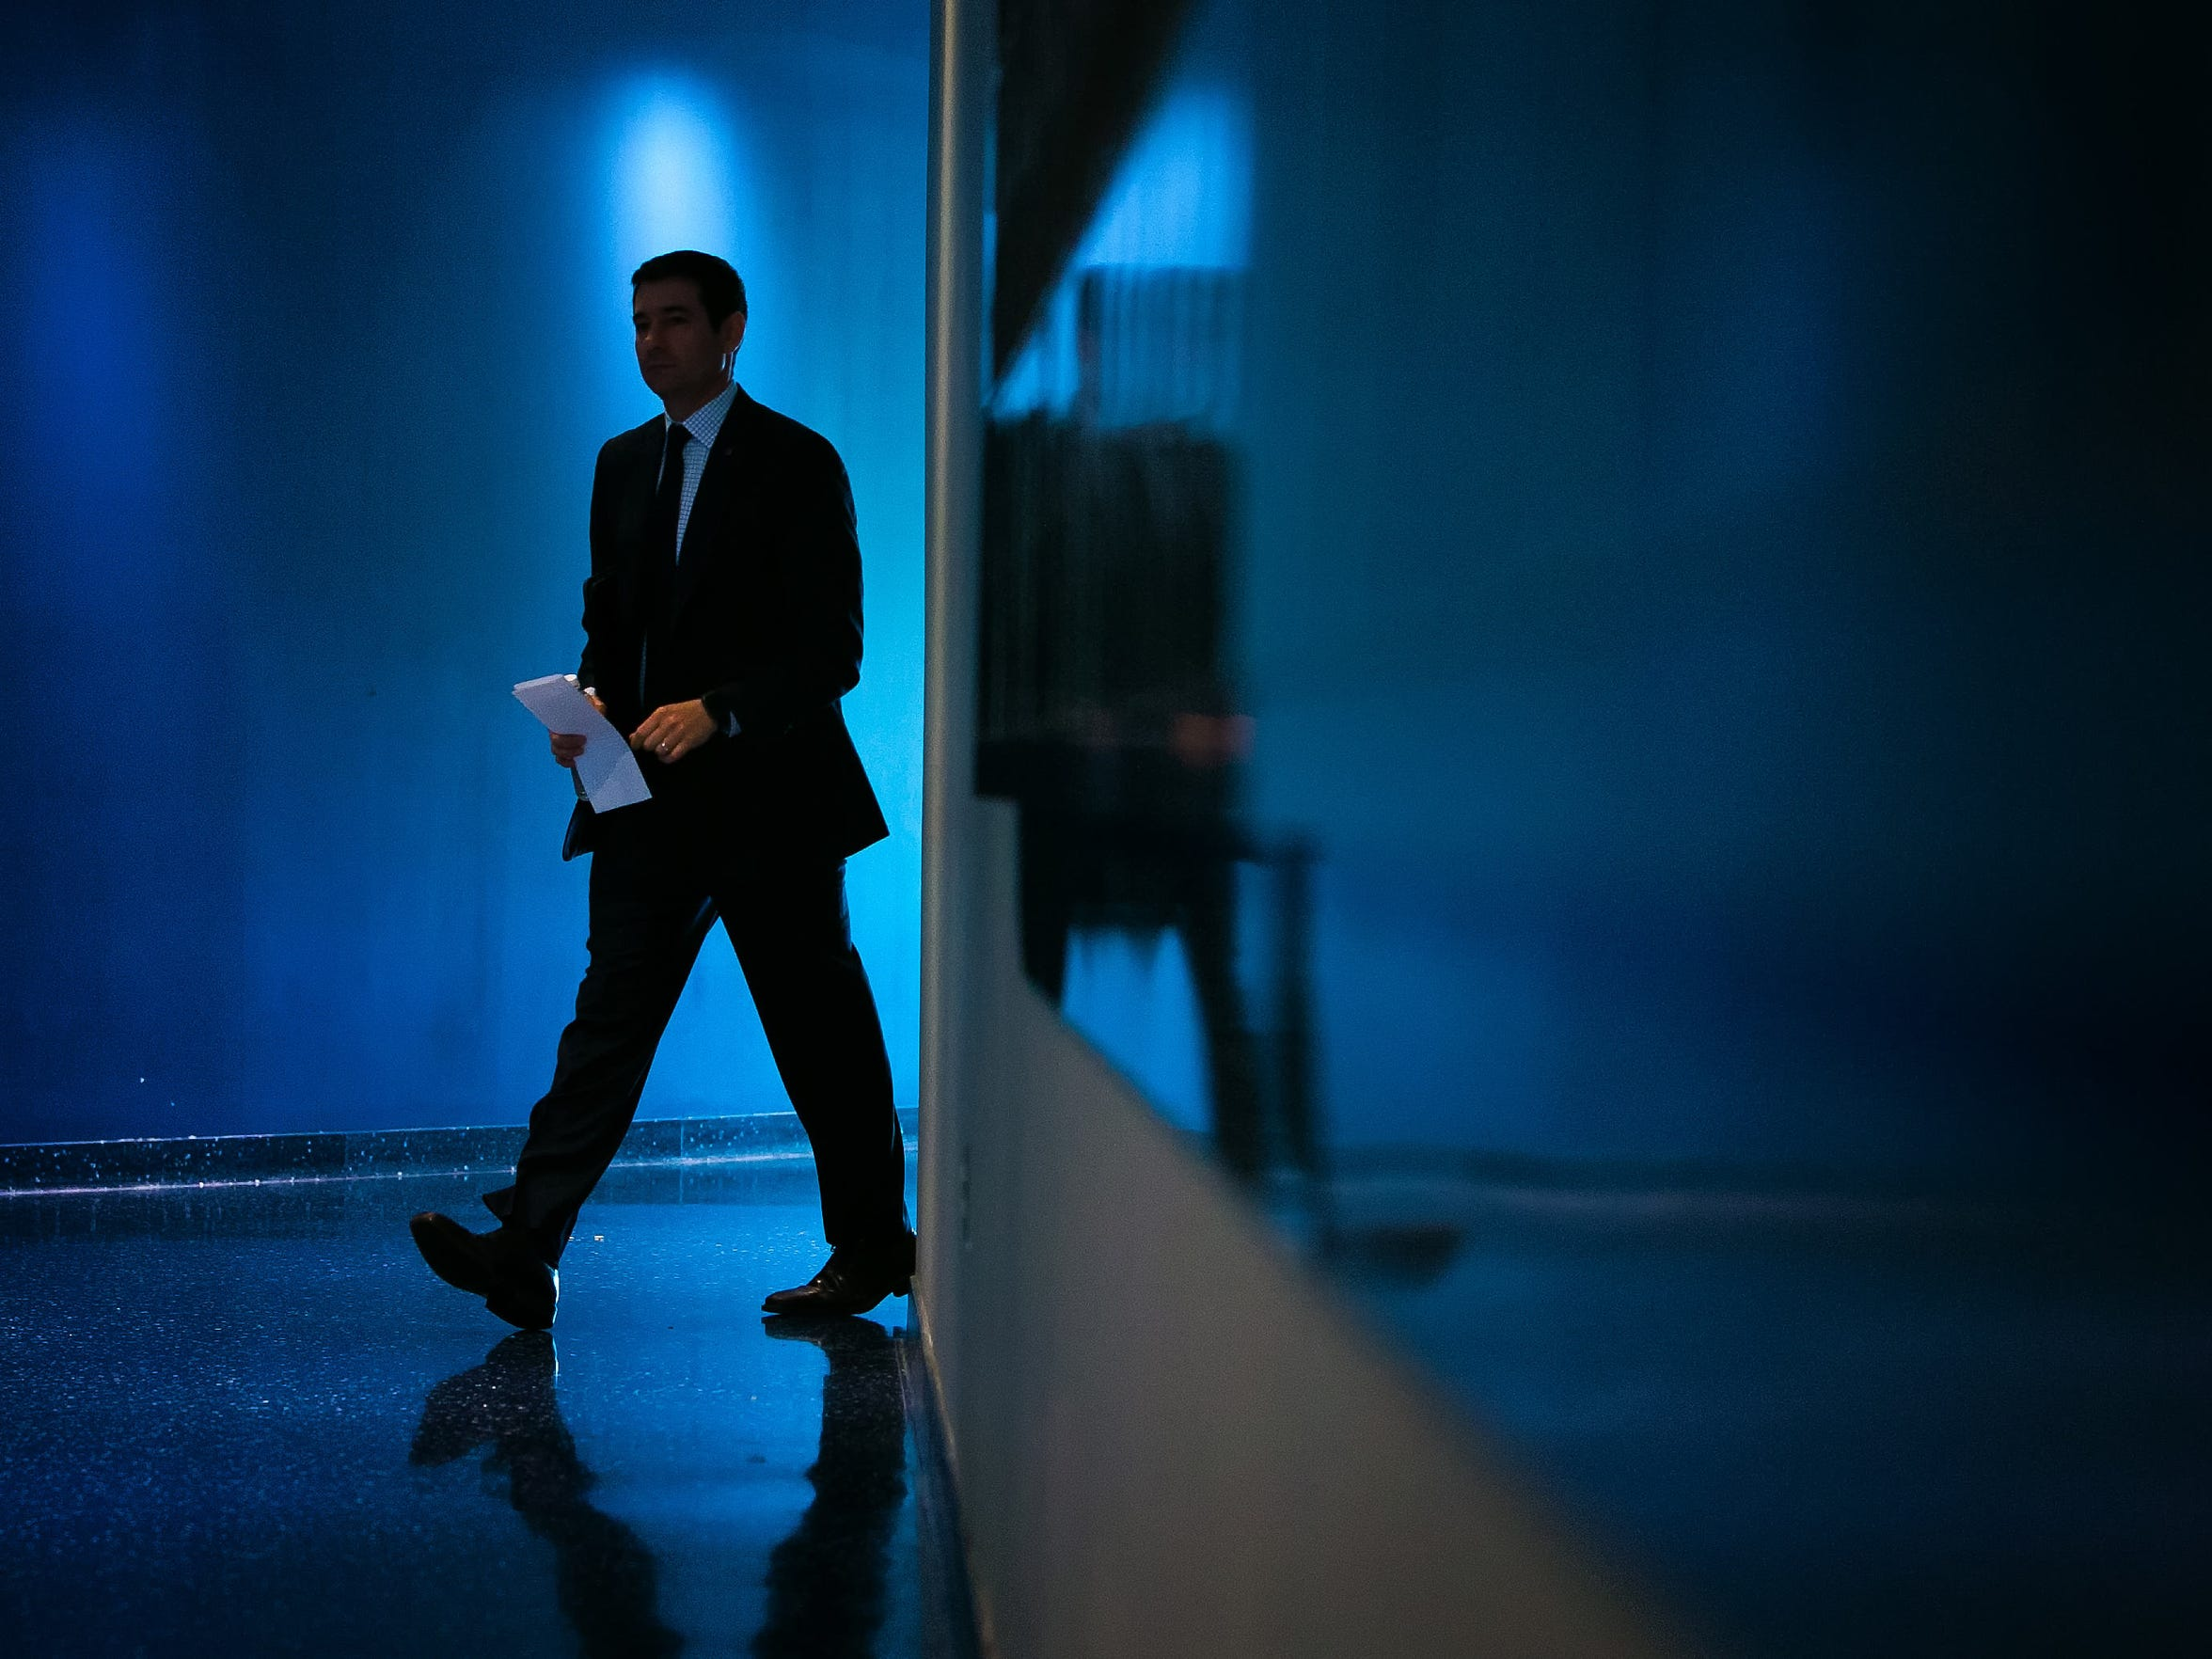 Martin Ingelsby walks the hallway of the Bob Carpenter Center on his way to the fan ceremony after he was announced as the University of Delaware's new basketball coach.